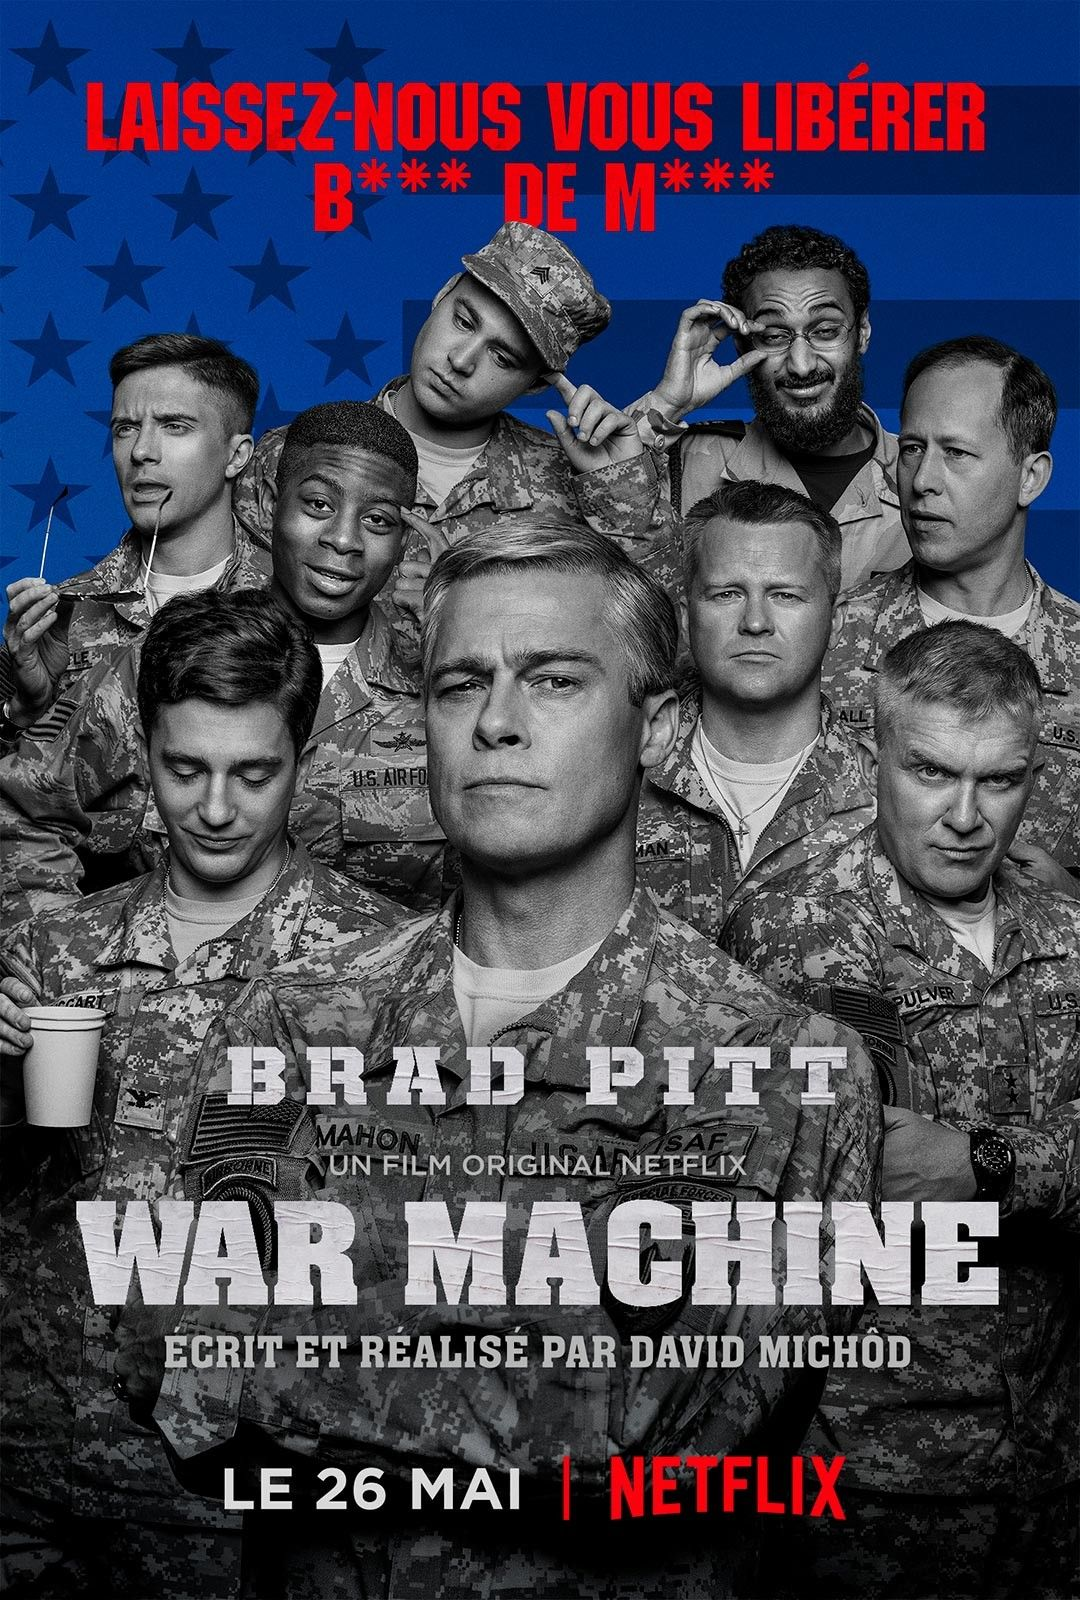 War Machine Streaming movies, Movies online, Full movies